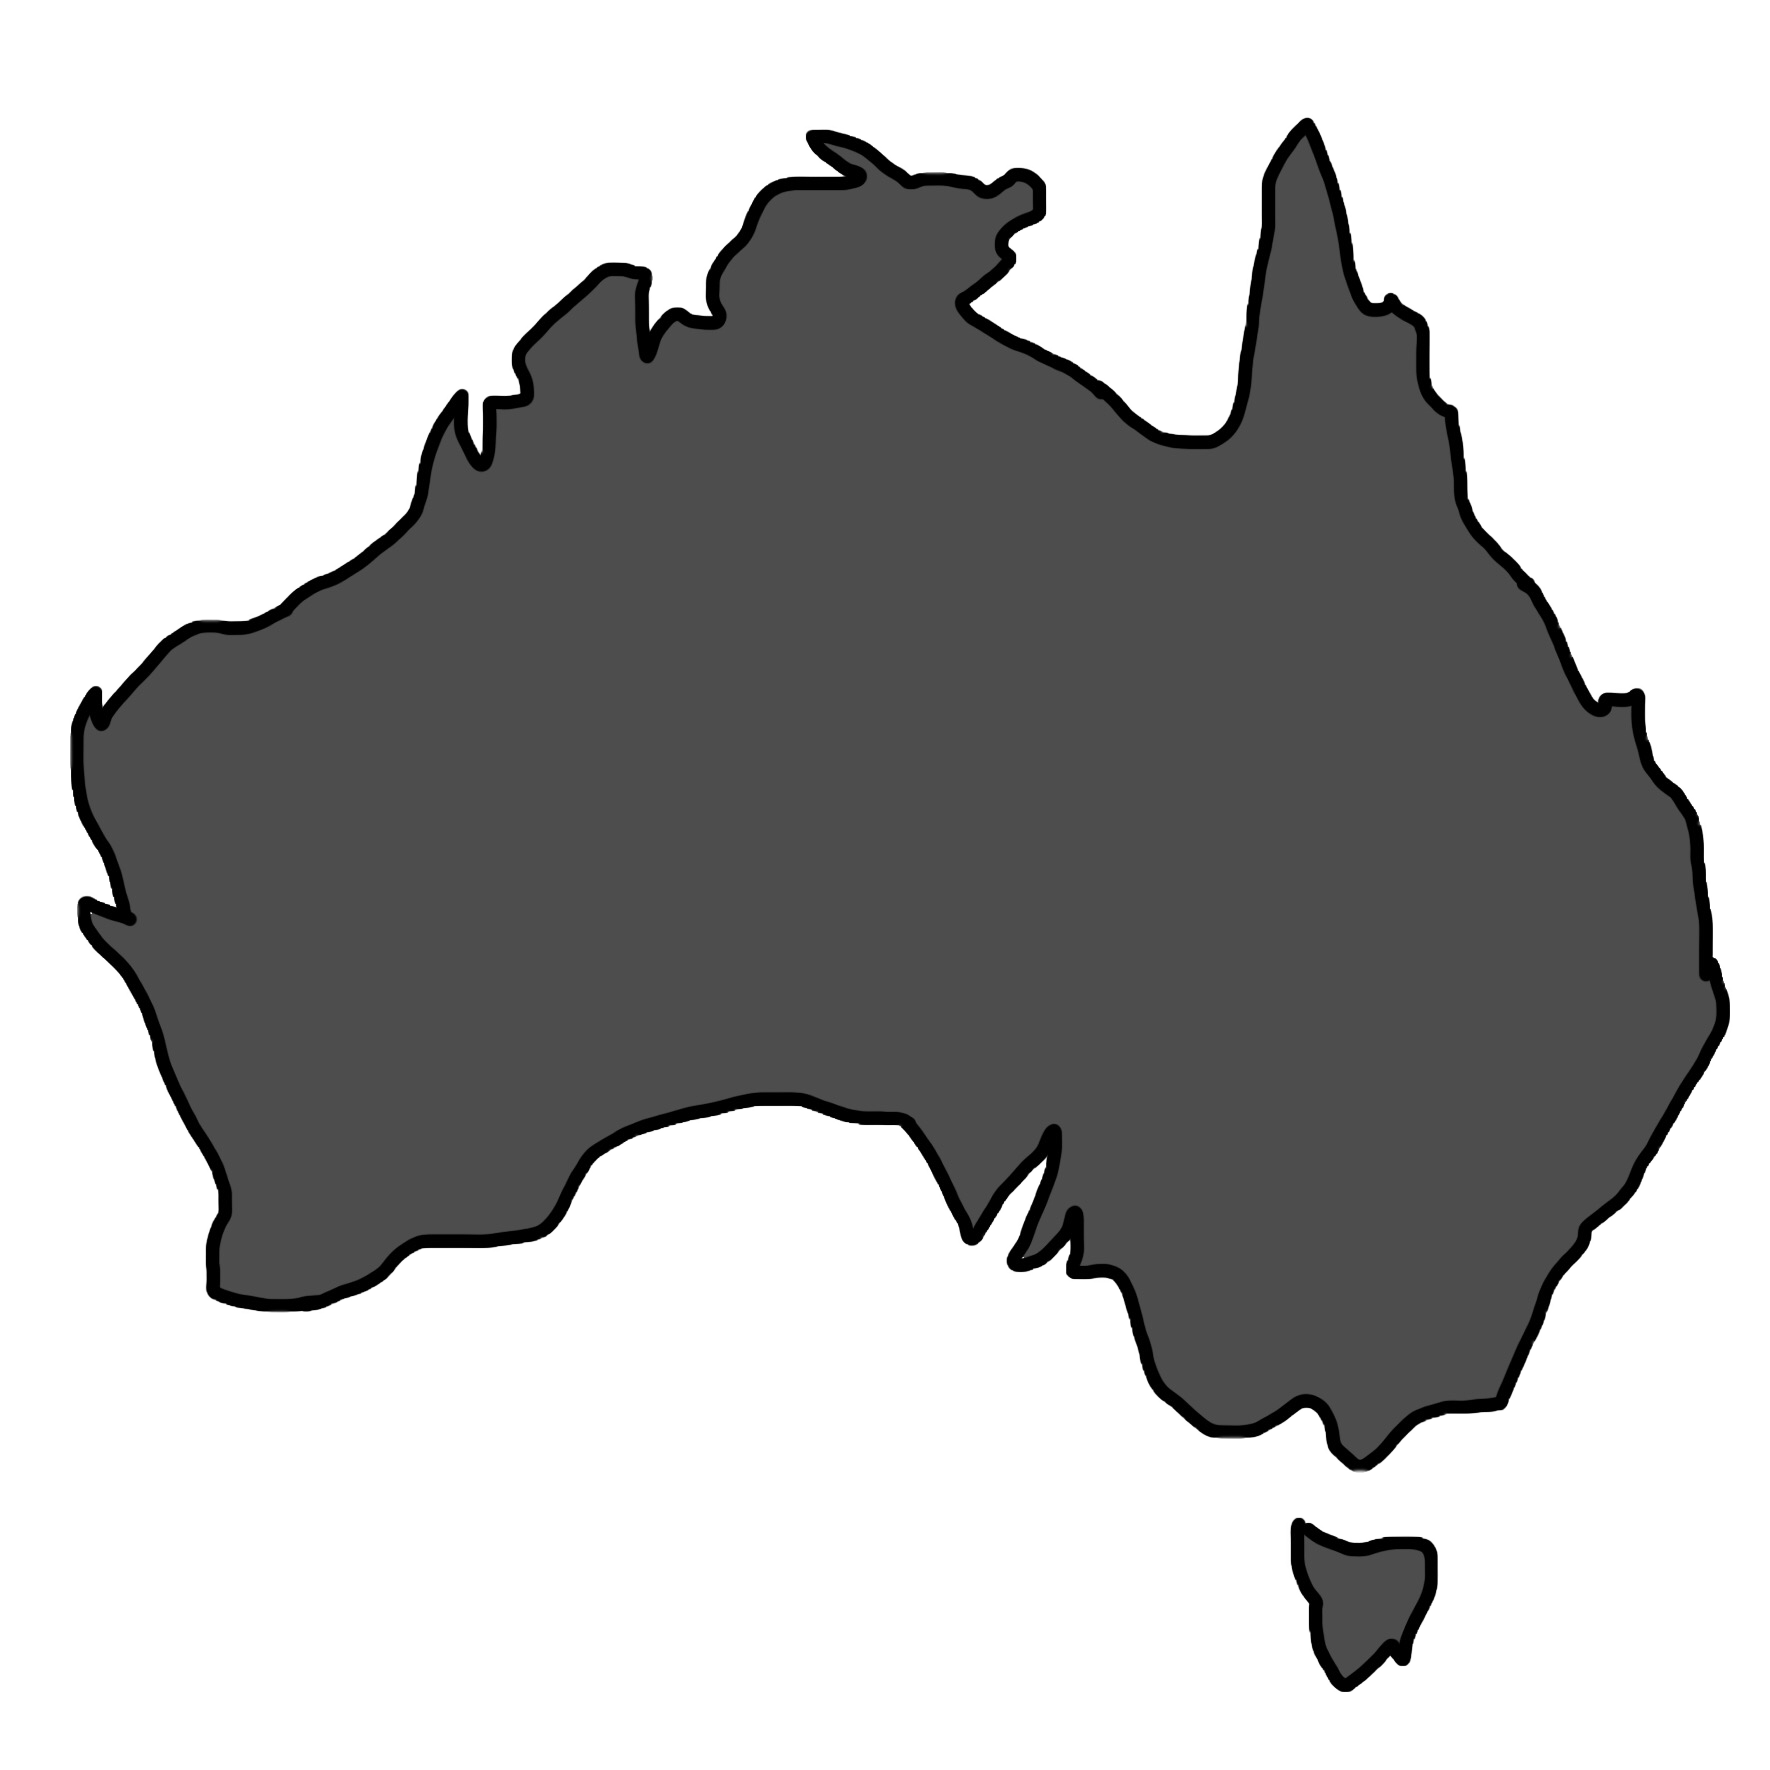 Australia Map Png.File Australia Map Blacked Png Wikimedia Commons